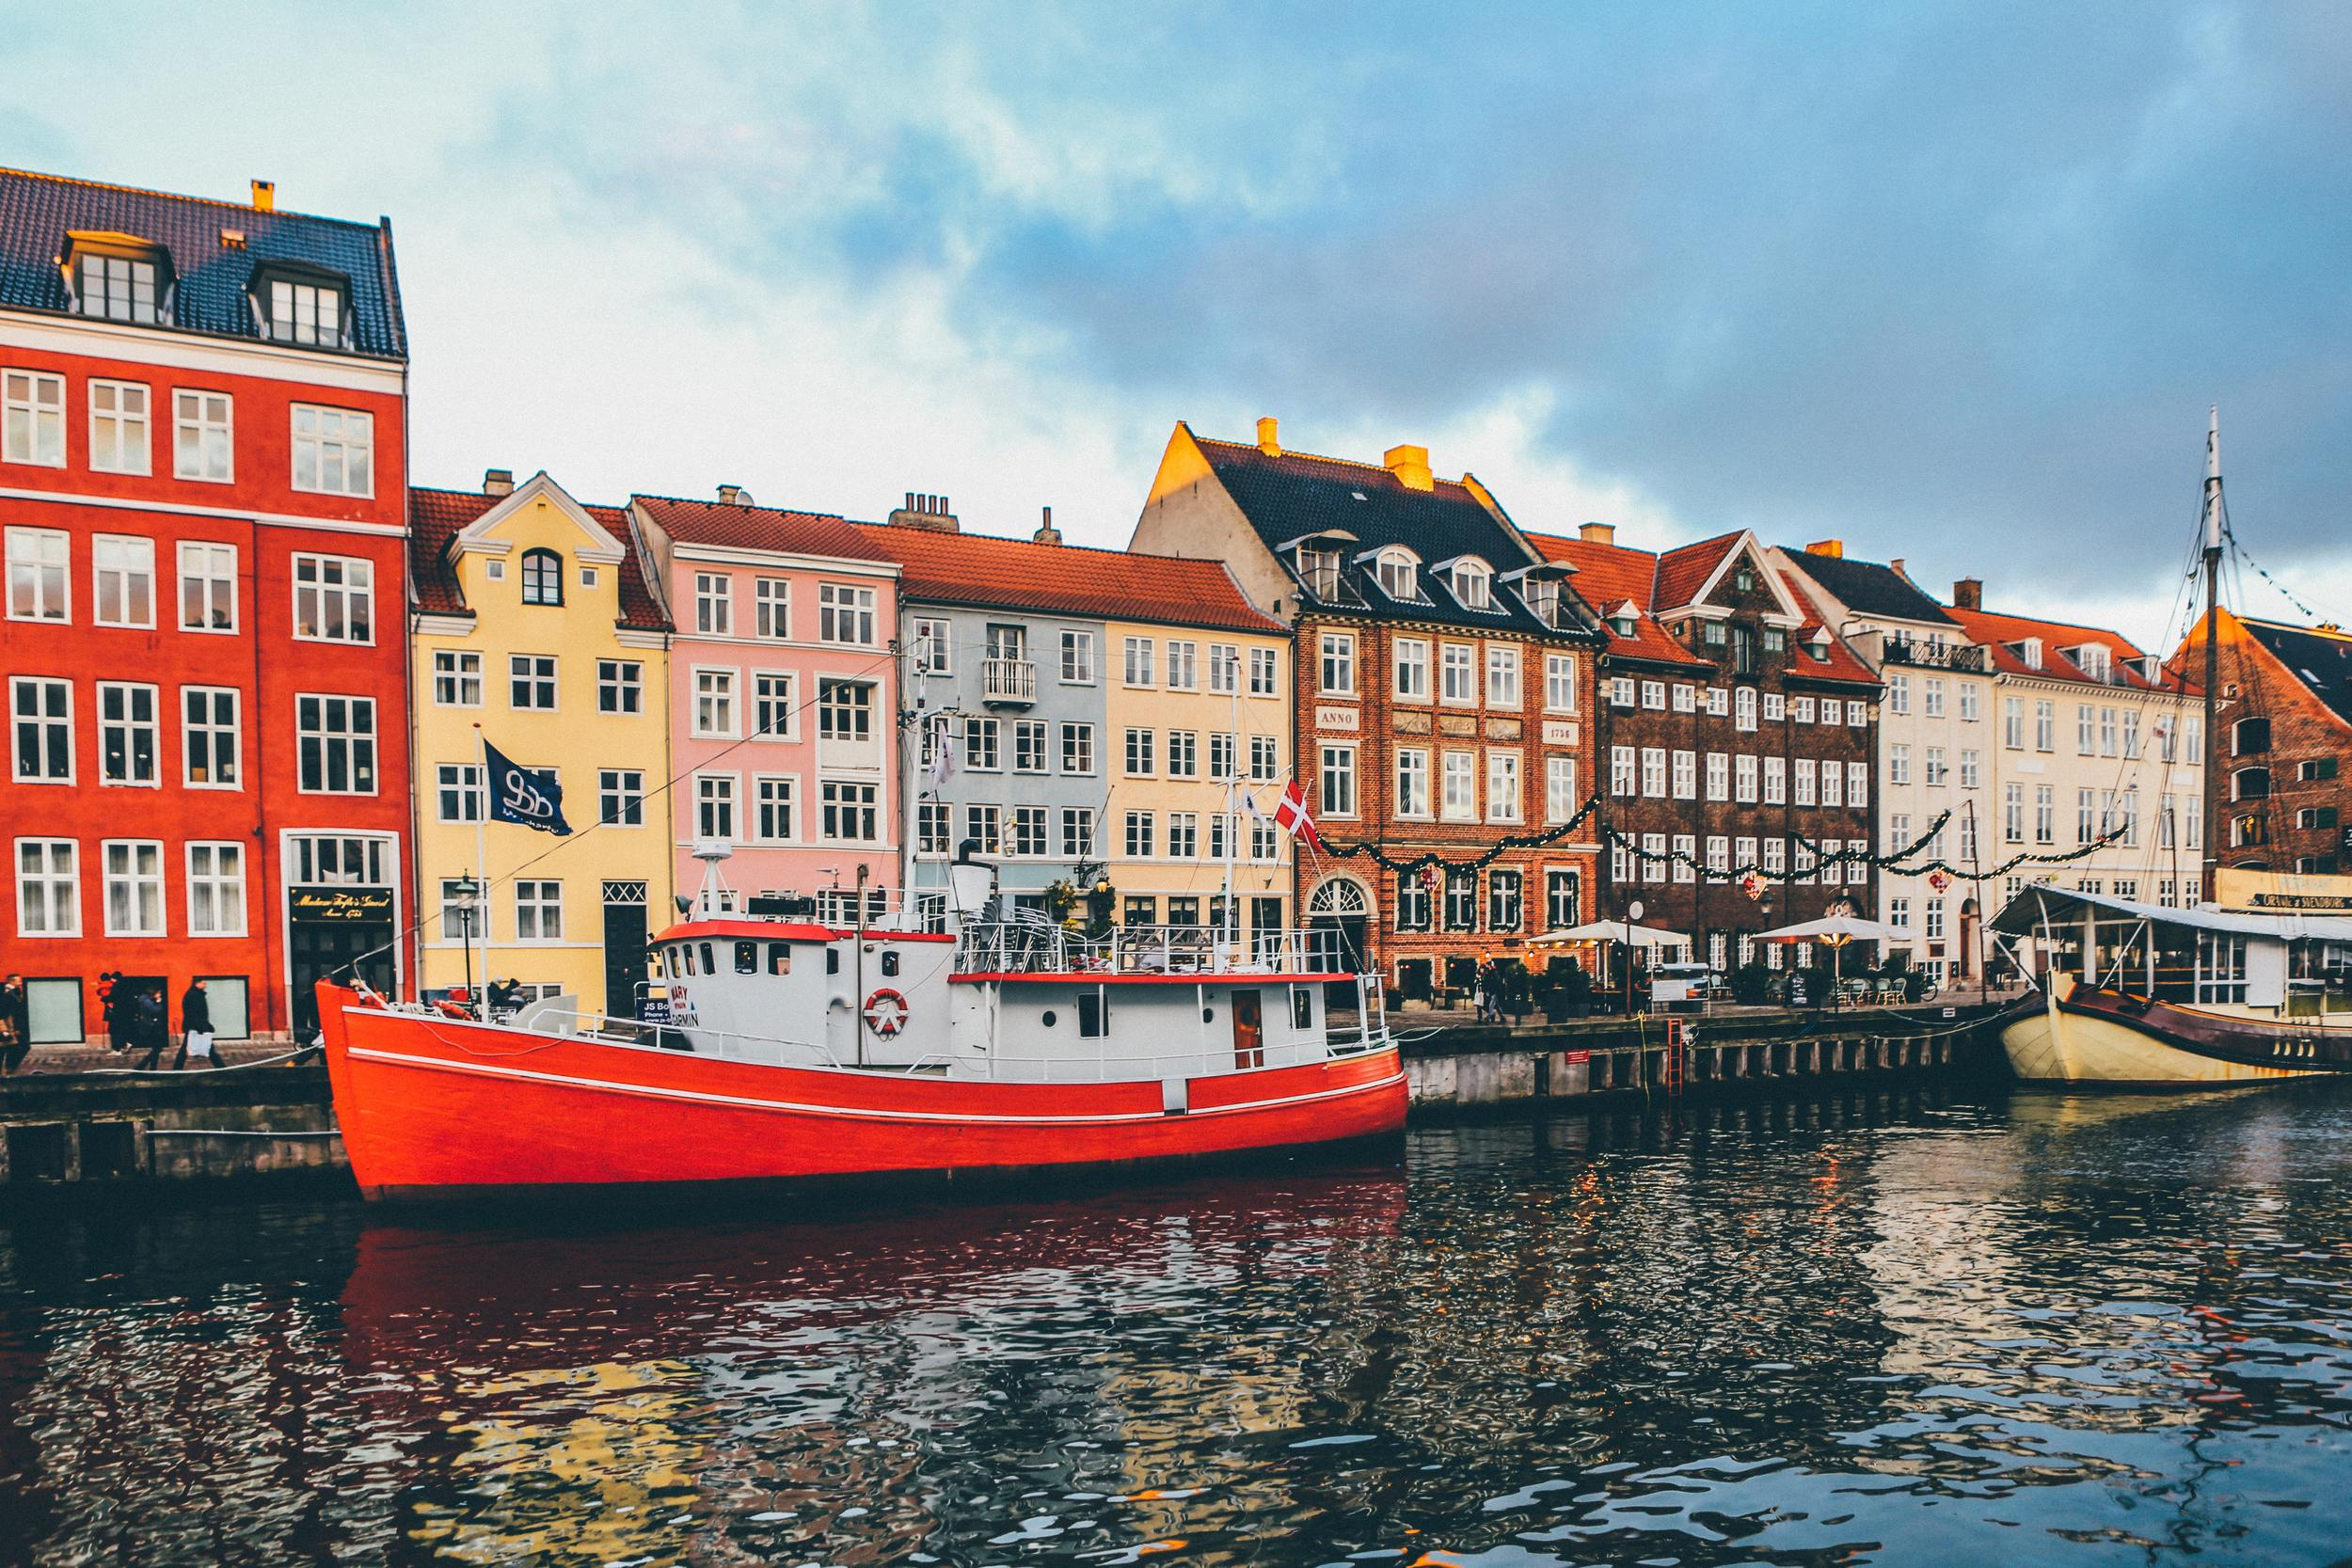 Thomas Salzano's Travel Guide to the Best Vacation Spots In 20201